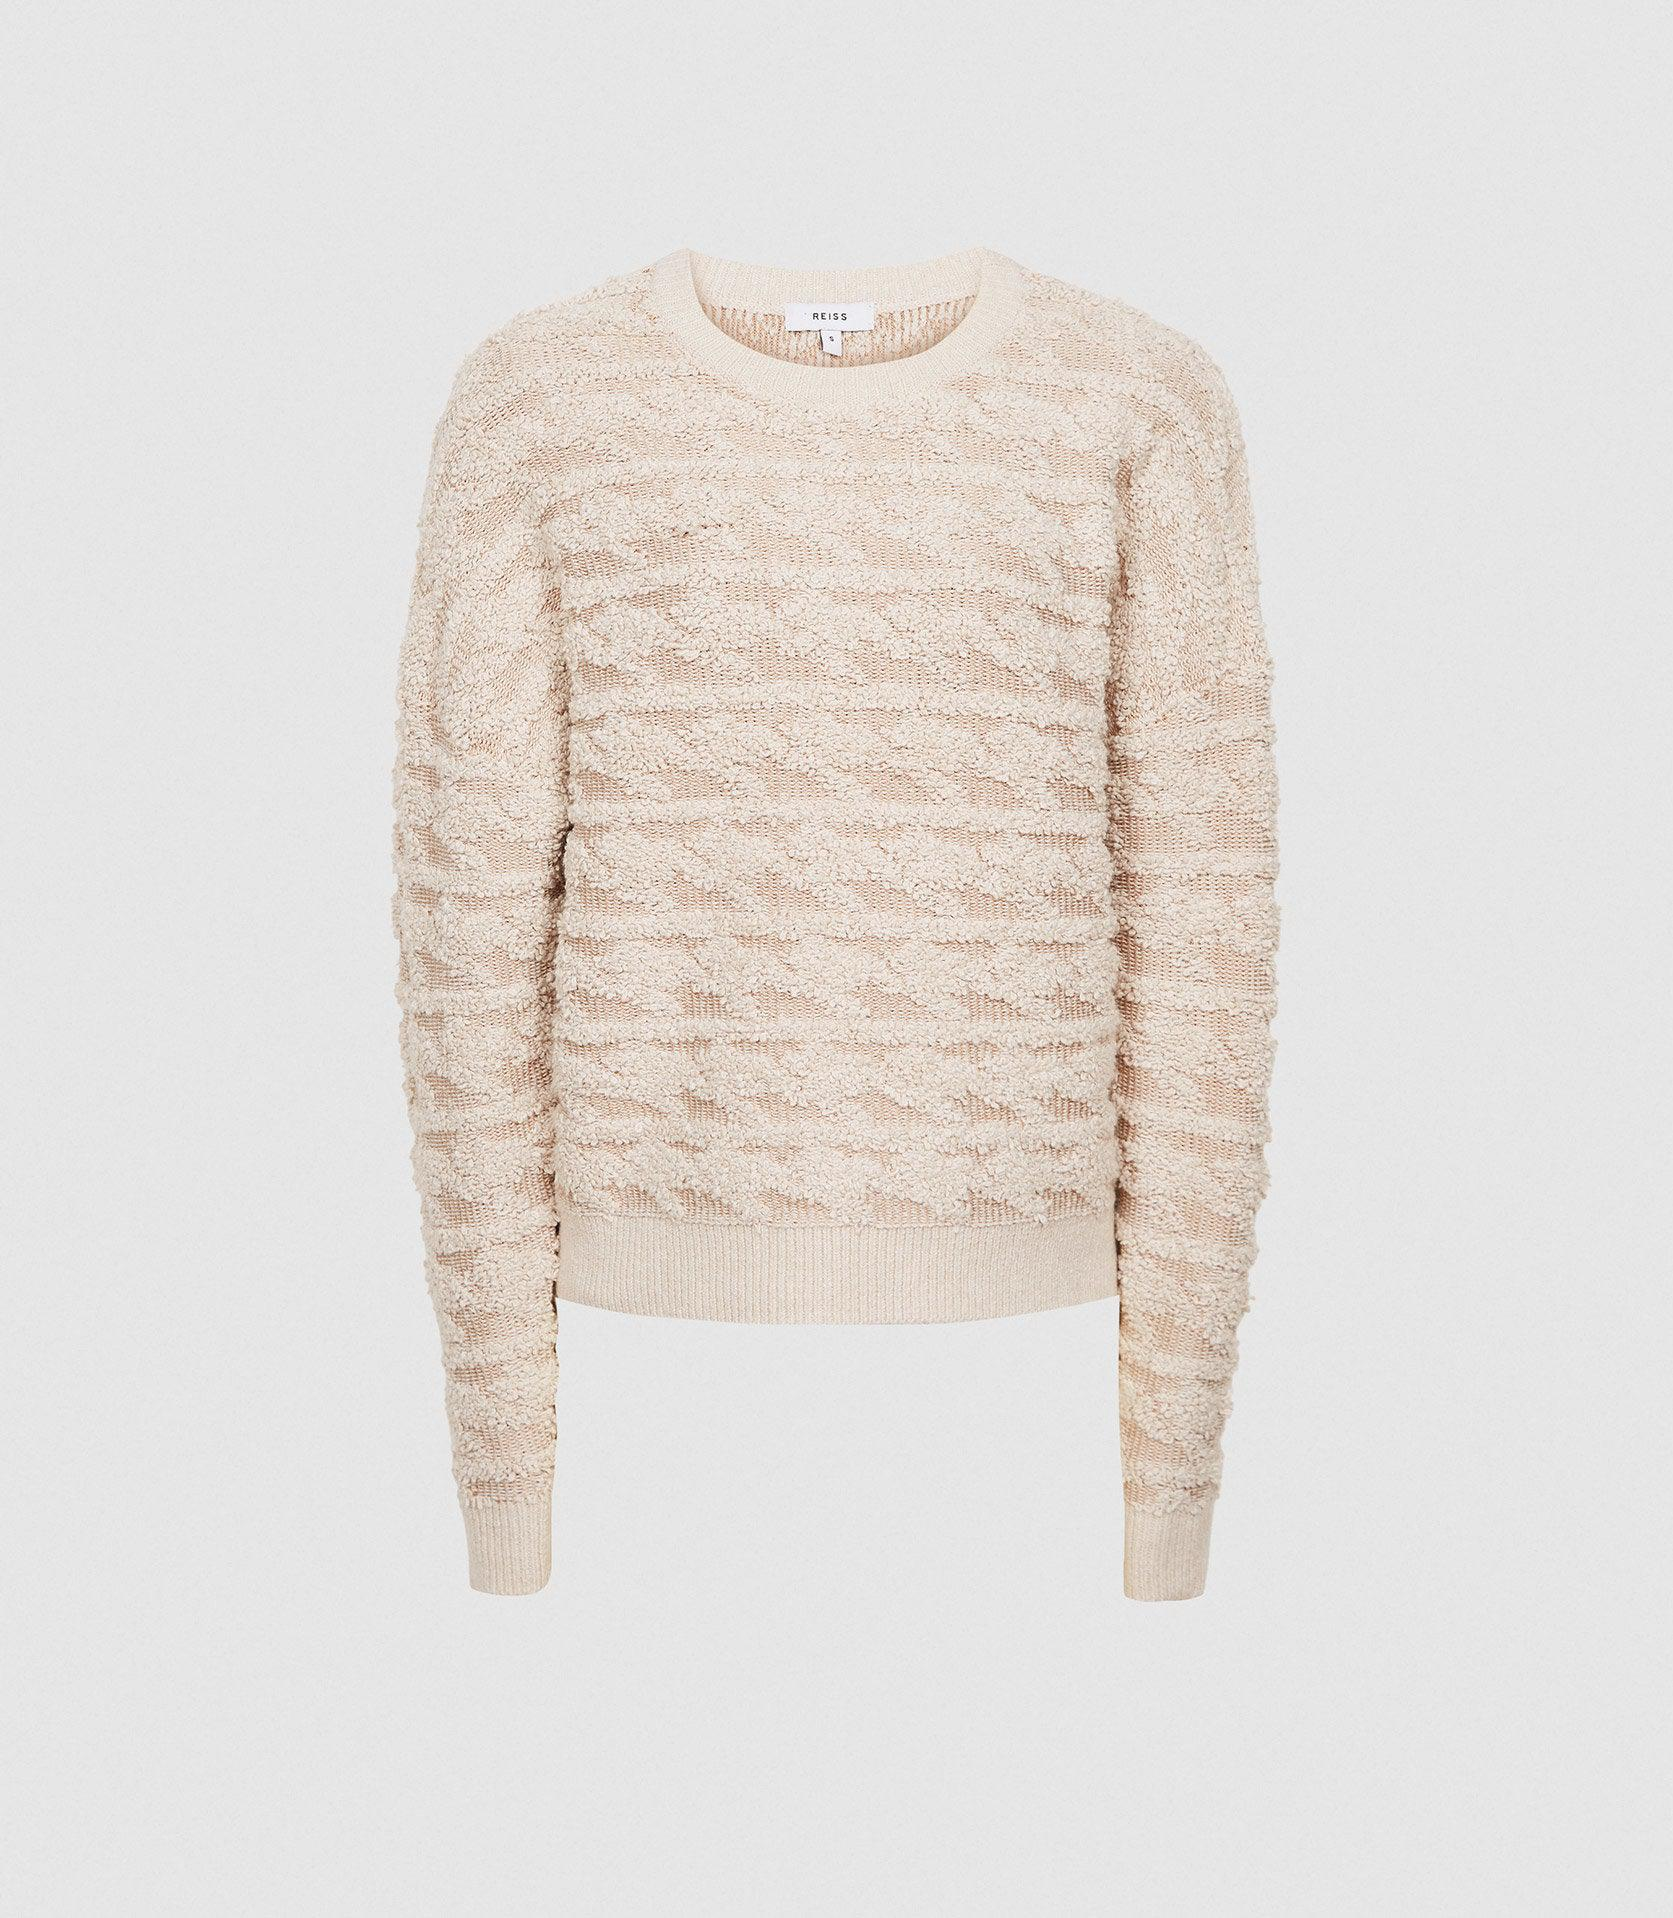 OTTO - TEXTURED PATTERNED JUMPER 3